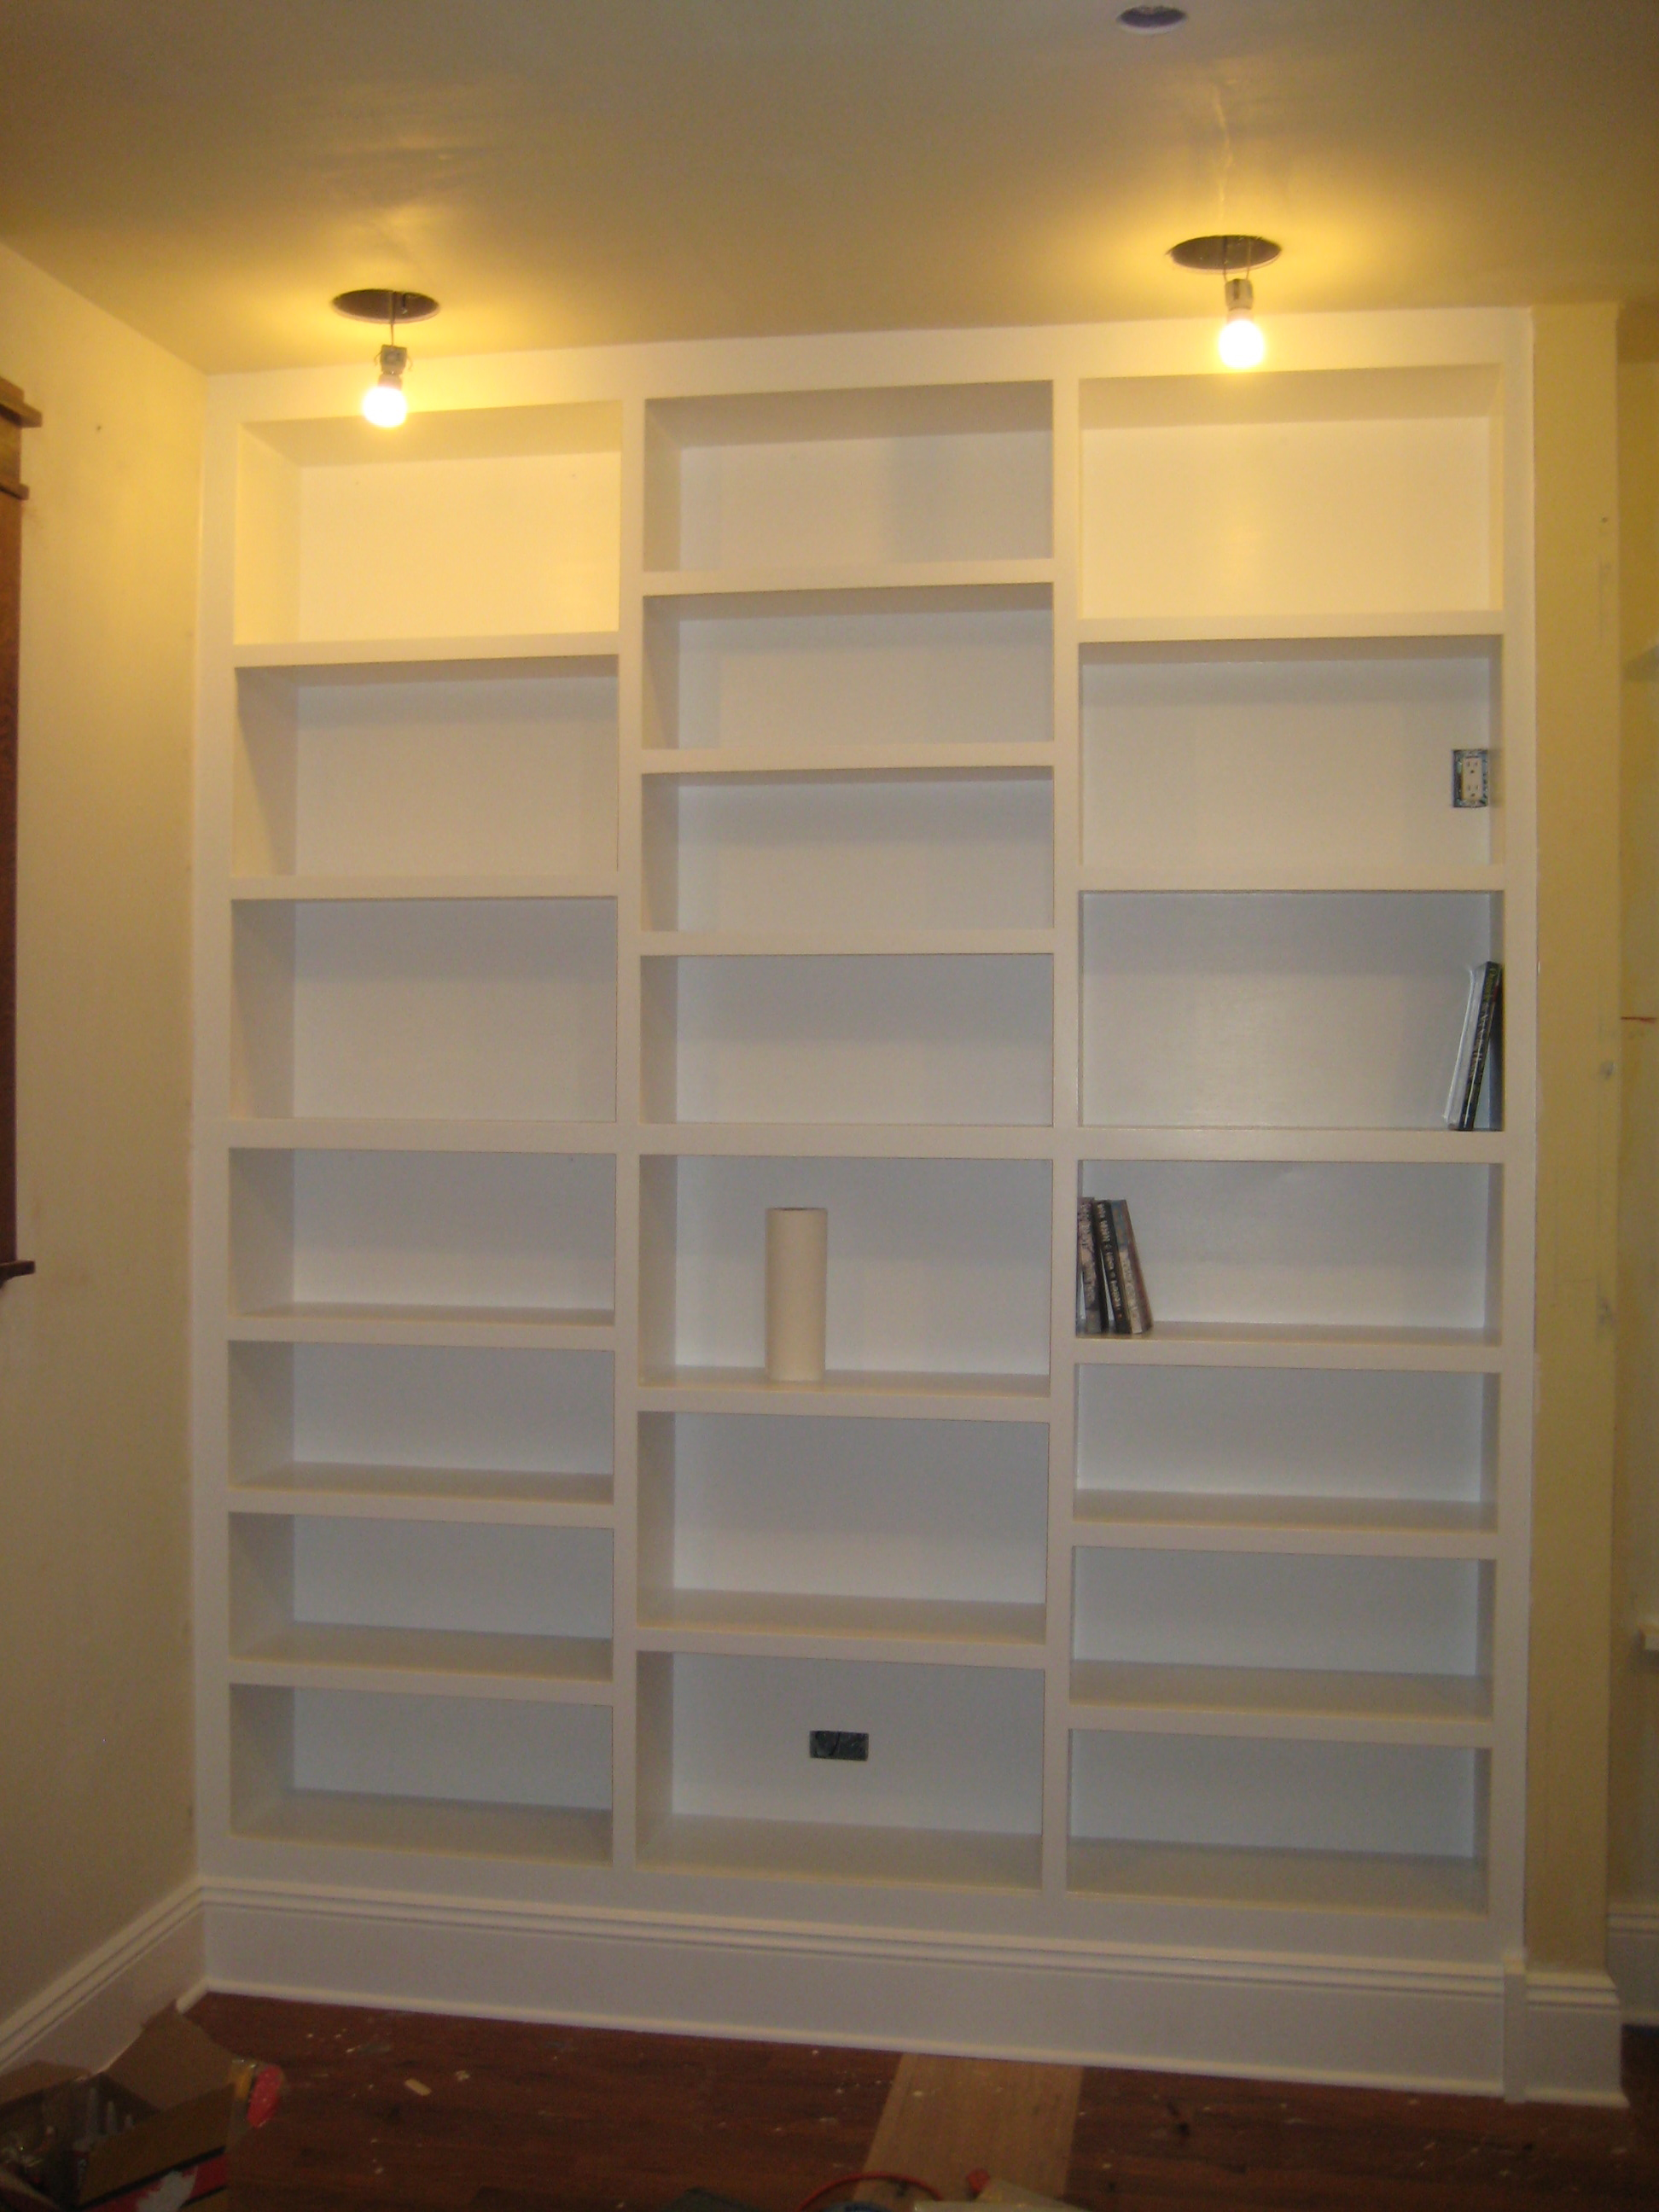 PDF Diy Built In Bookcase Plans Plans DIY Free Kids Bed Plans With Storage  | Abashed16fcg